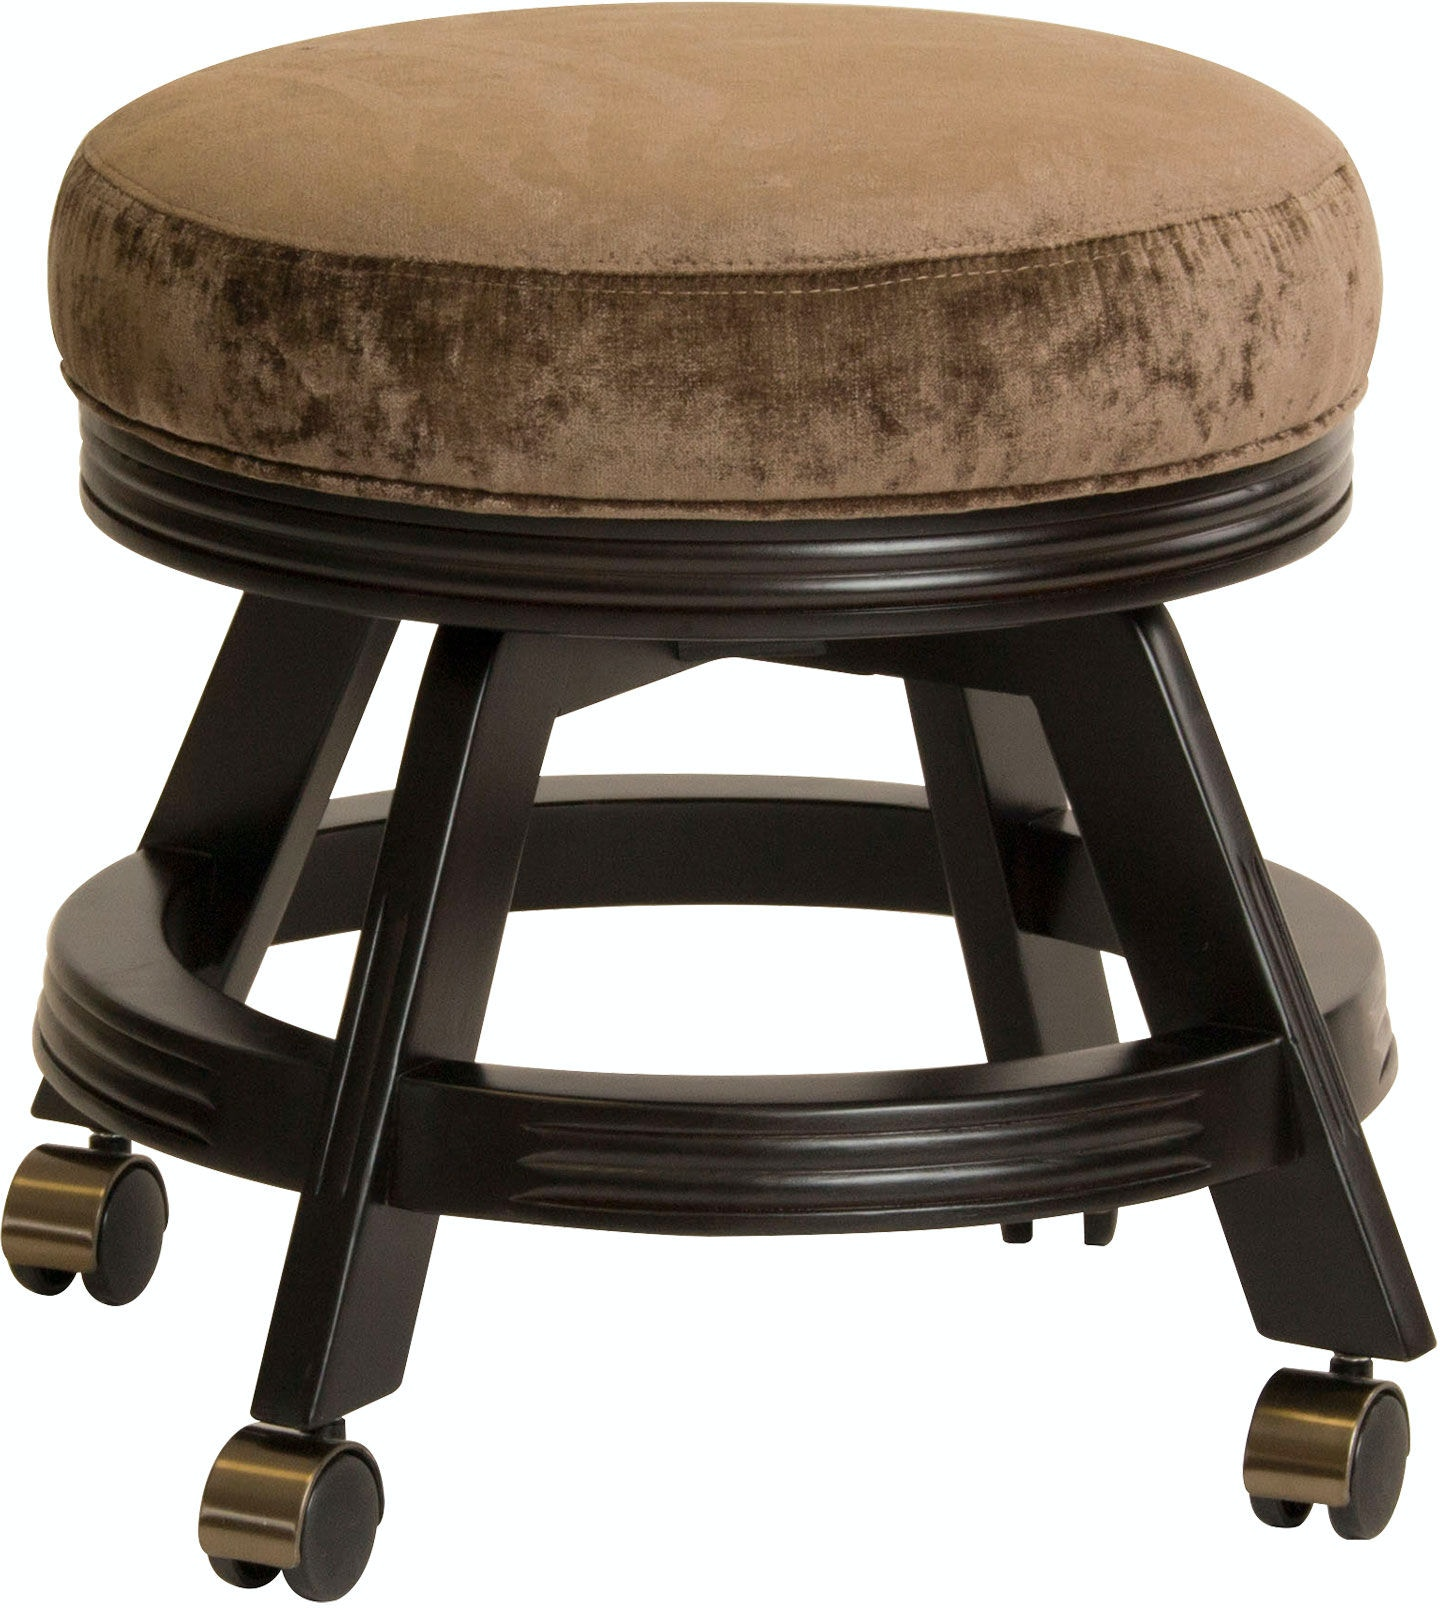 Darafeev Bedroom Vanity Stool With Casters 938 18c Zing